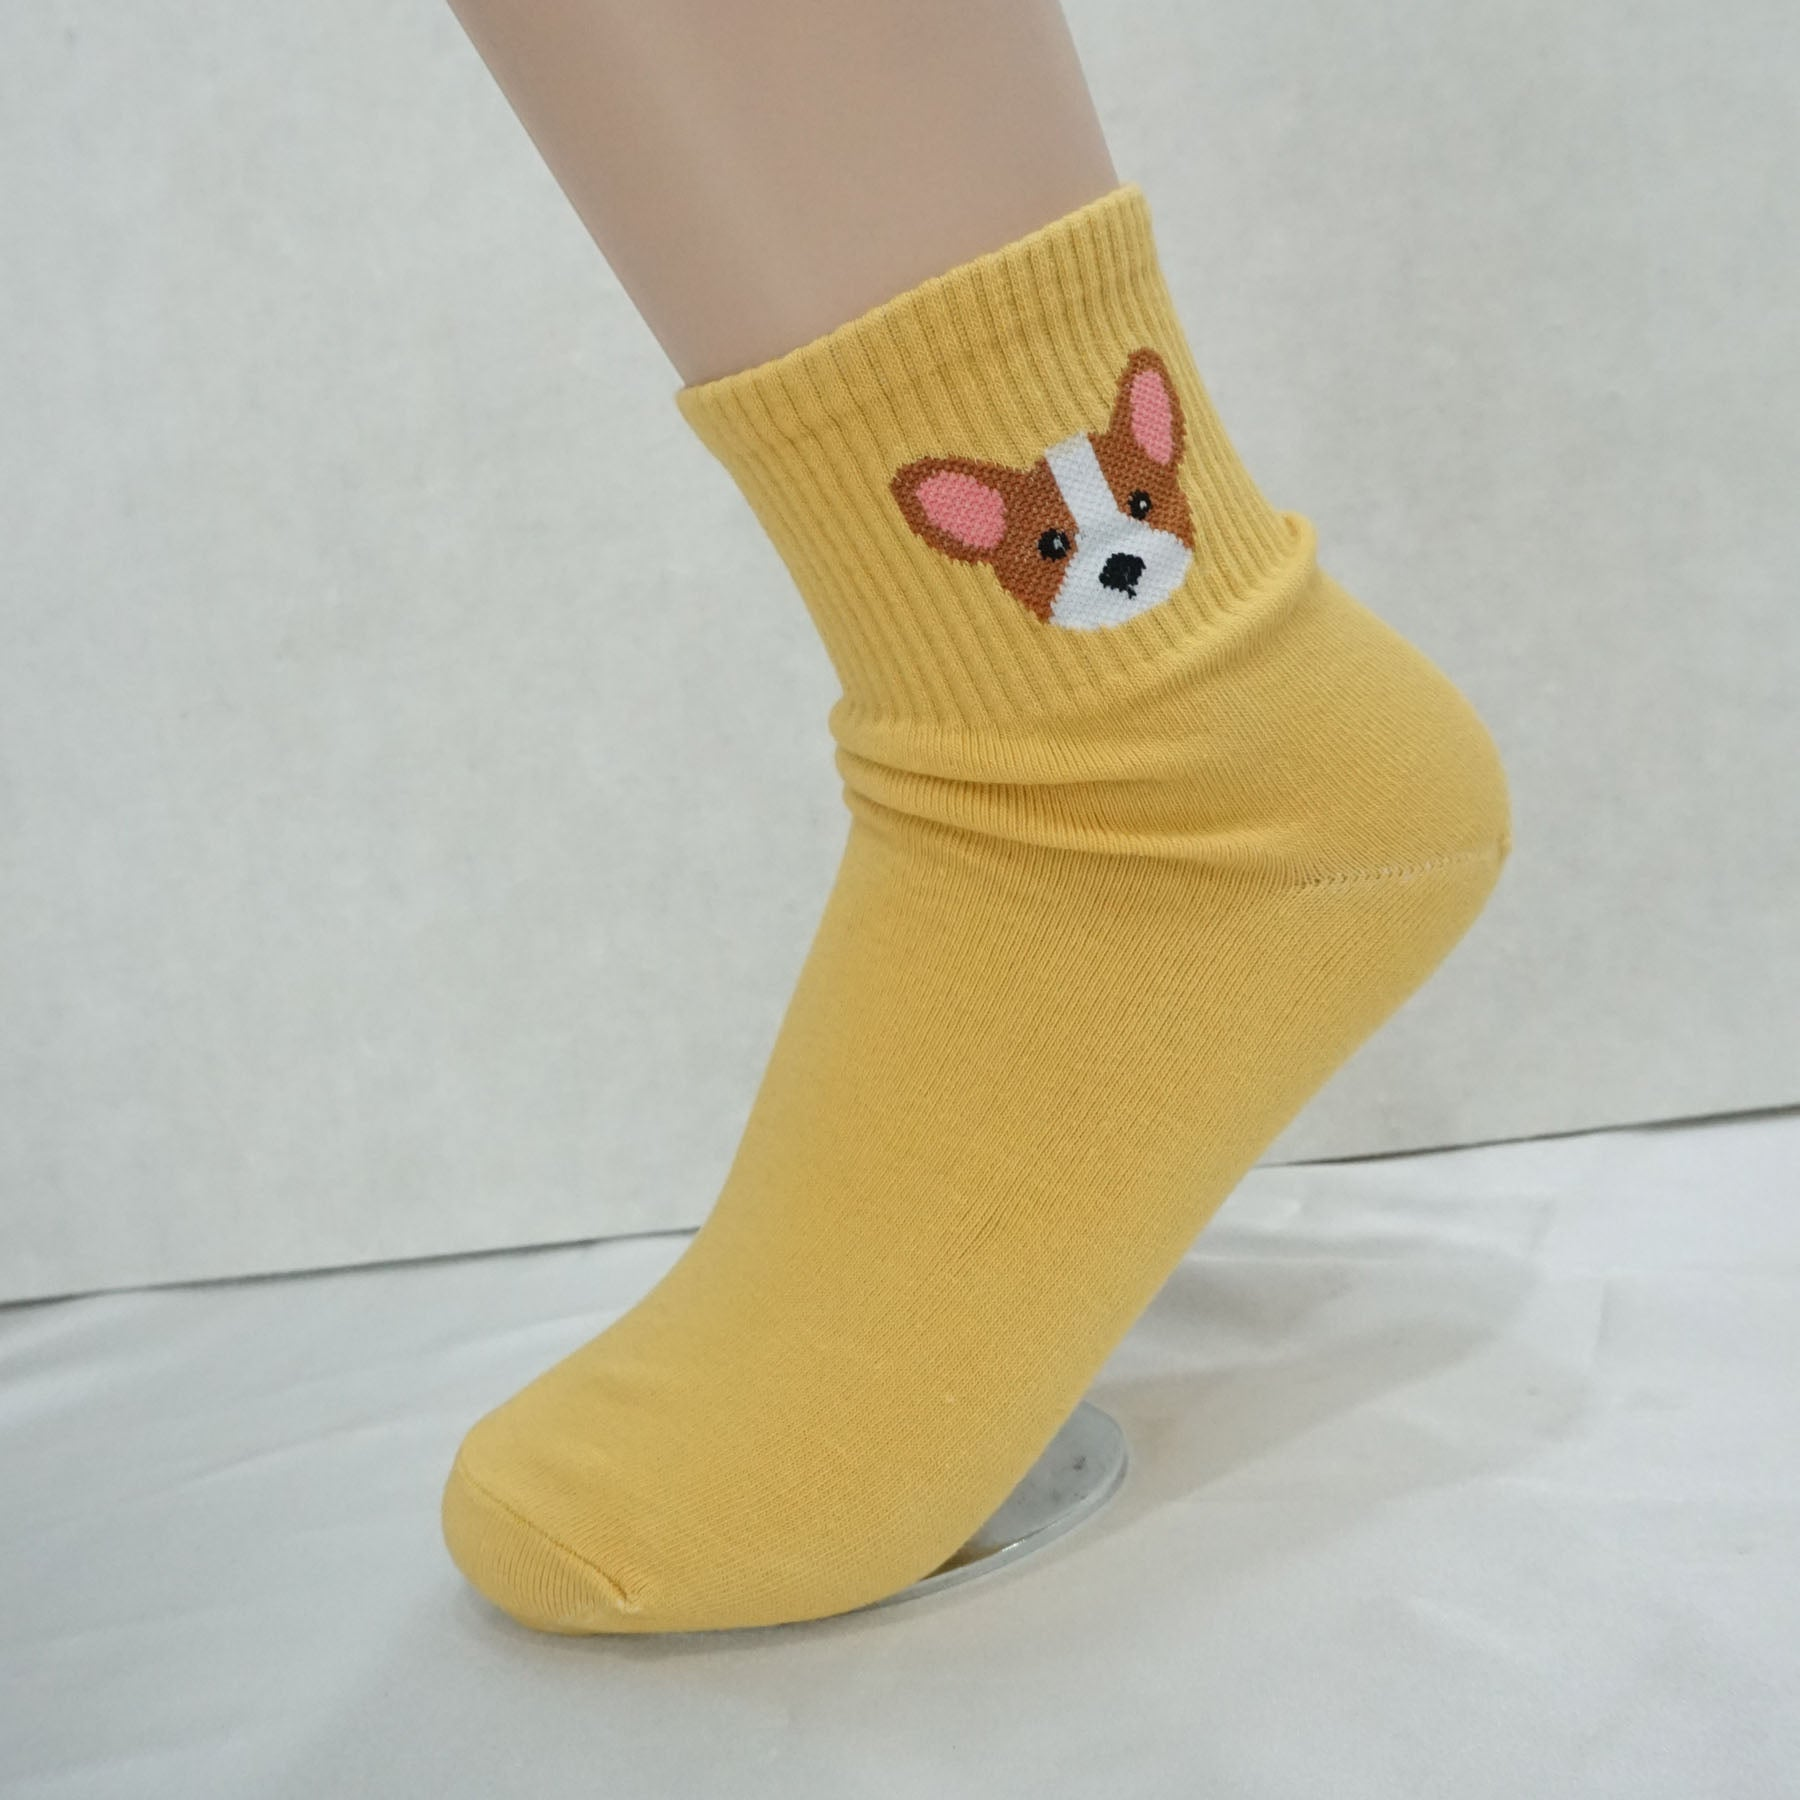 5Pairs Women's Cotton Cute Dog Print Ankle Socks My Puppy